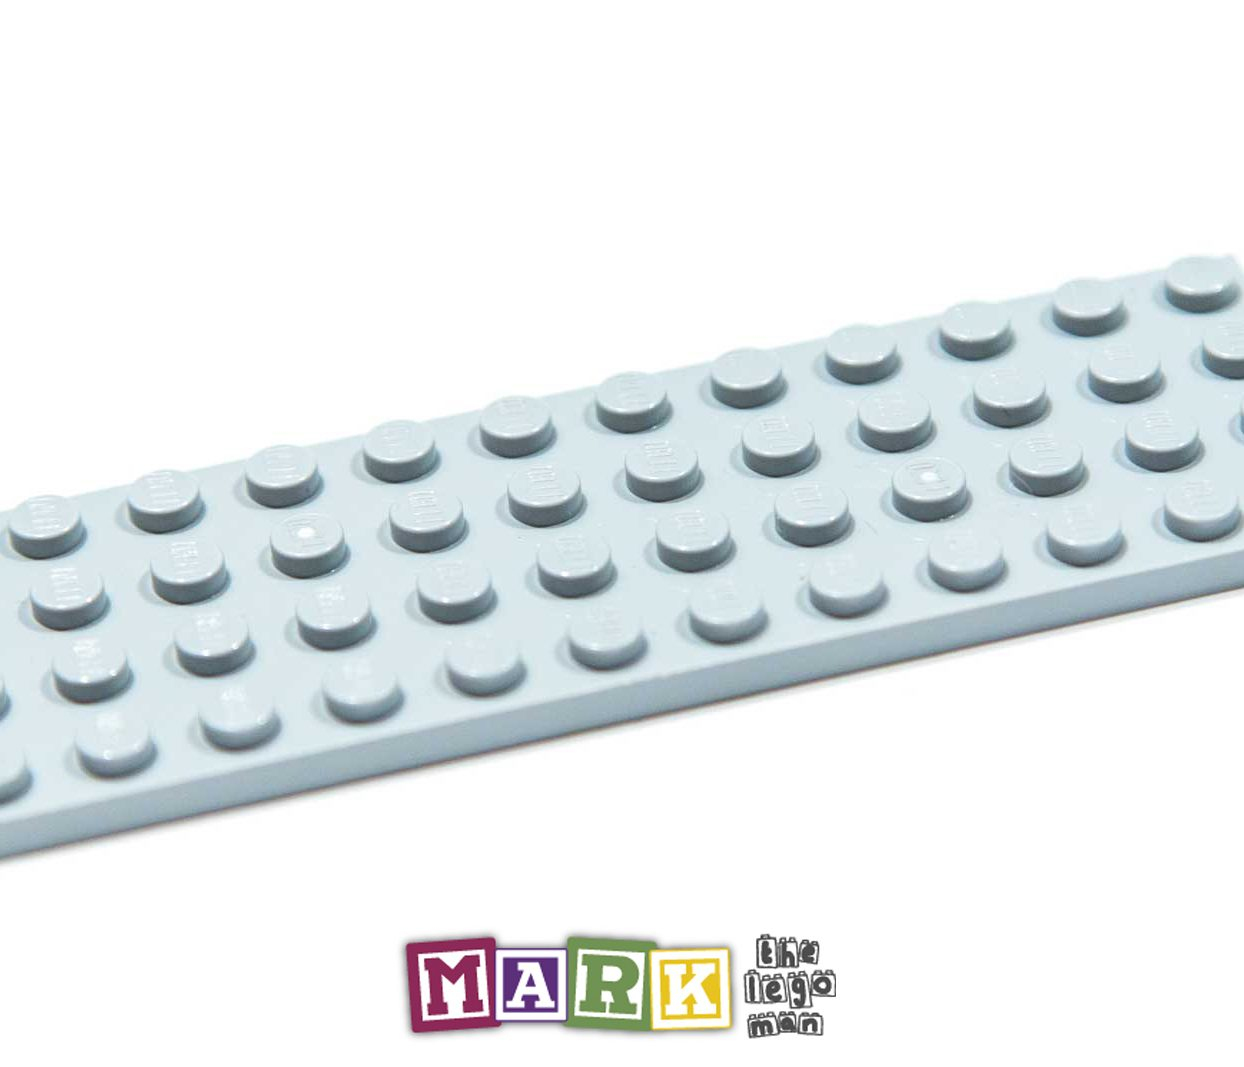 New Lego 3029 4x12 Plate 4211401